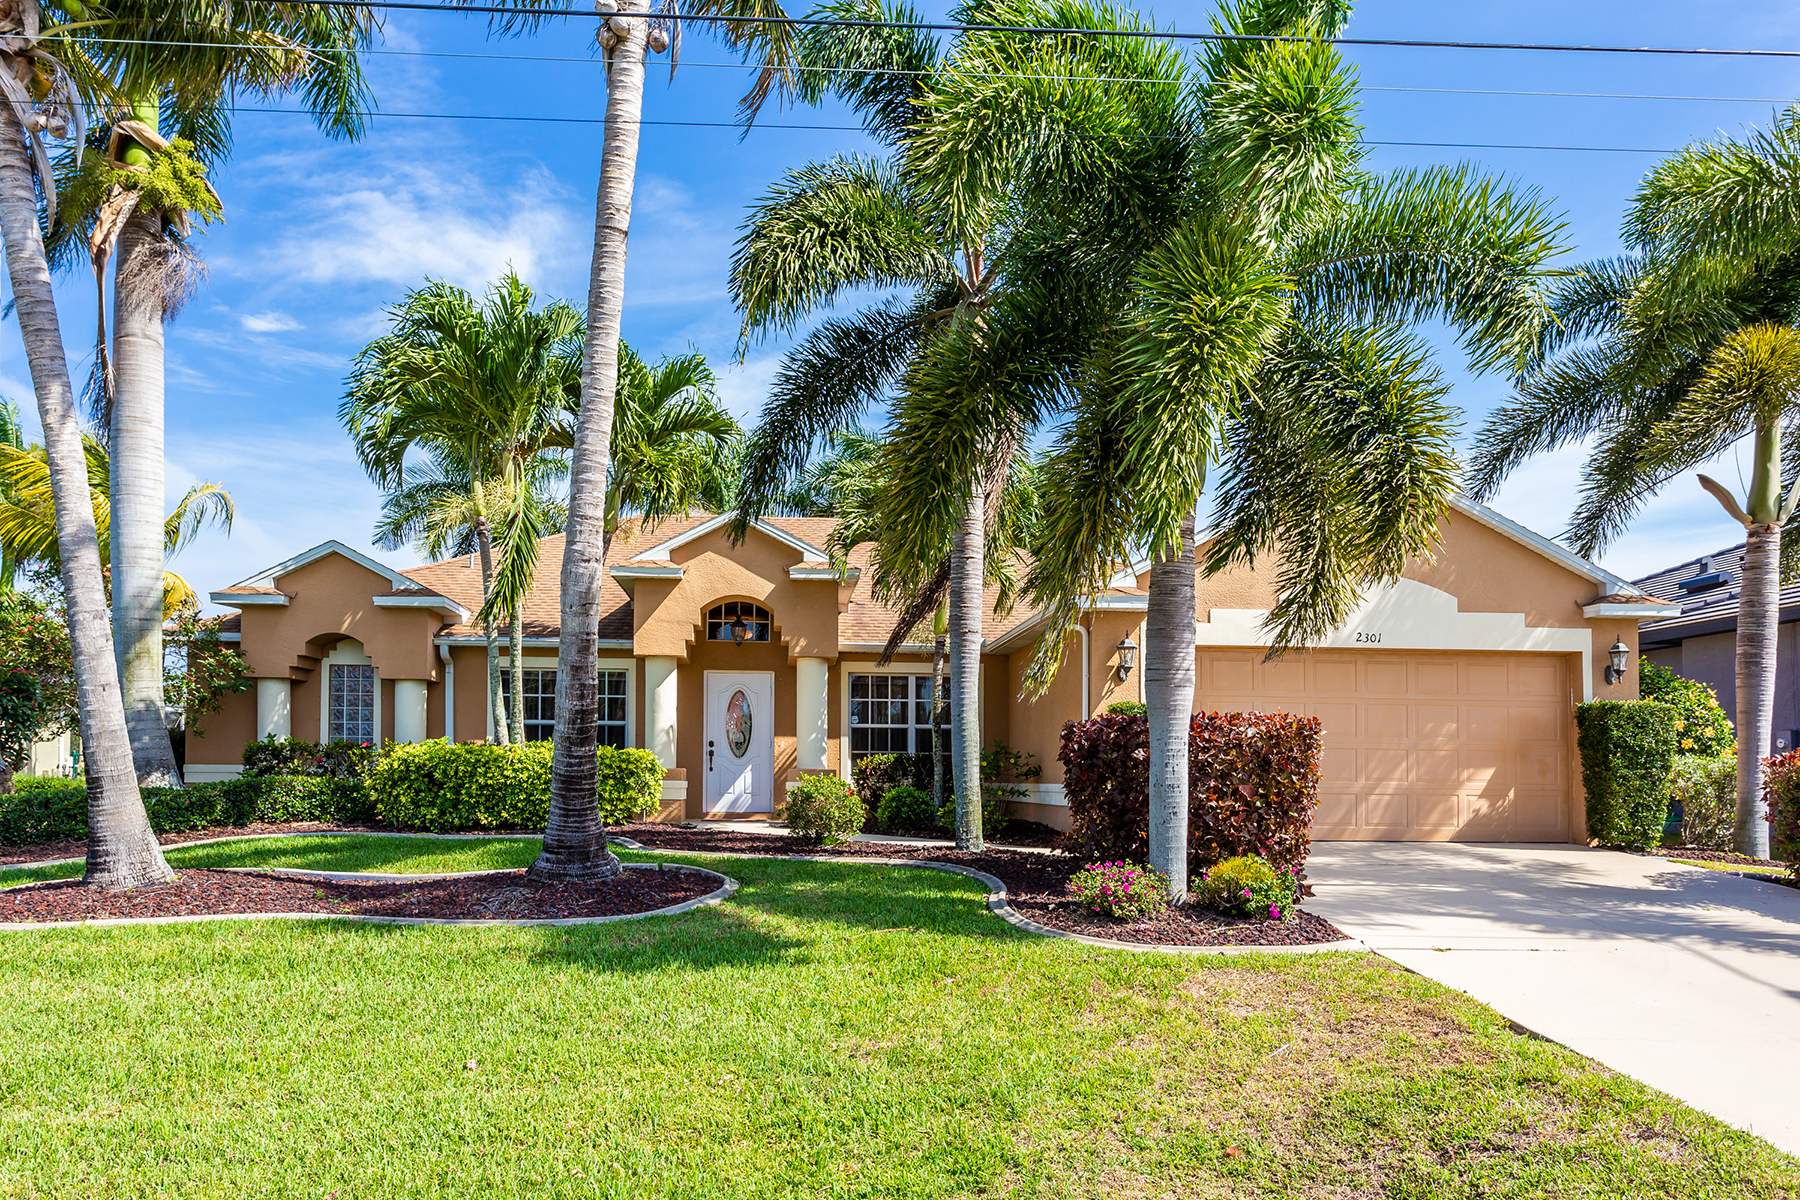 House for Sale at CAPE CORAL 2301 SW 50th Ln Cape Coral, Florida 33914 United States